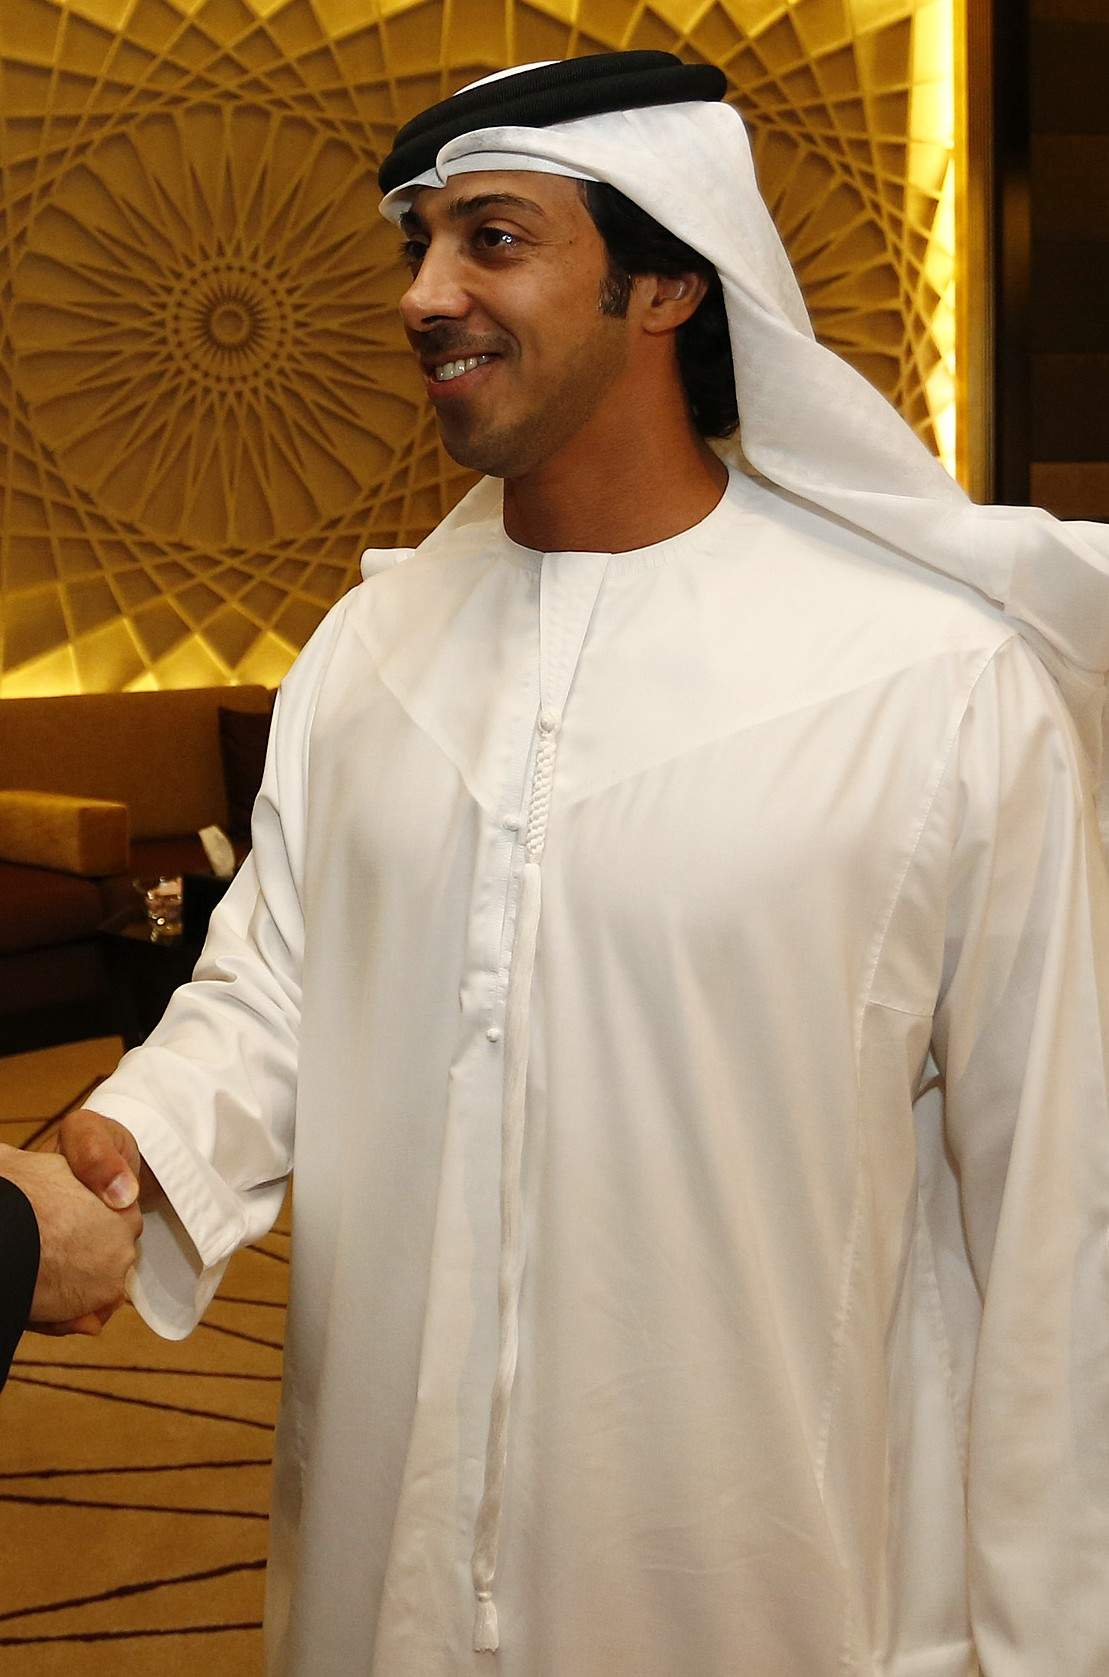 Sheikh Mansour, football club owners, Sheikh Mansour's business interests